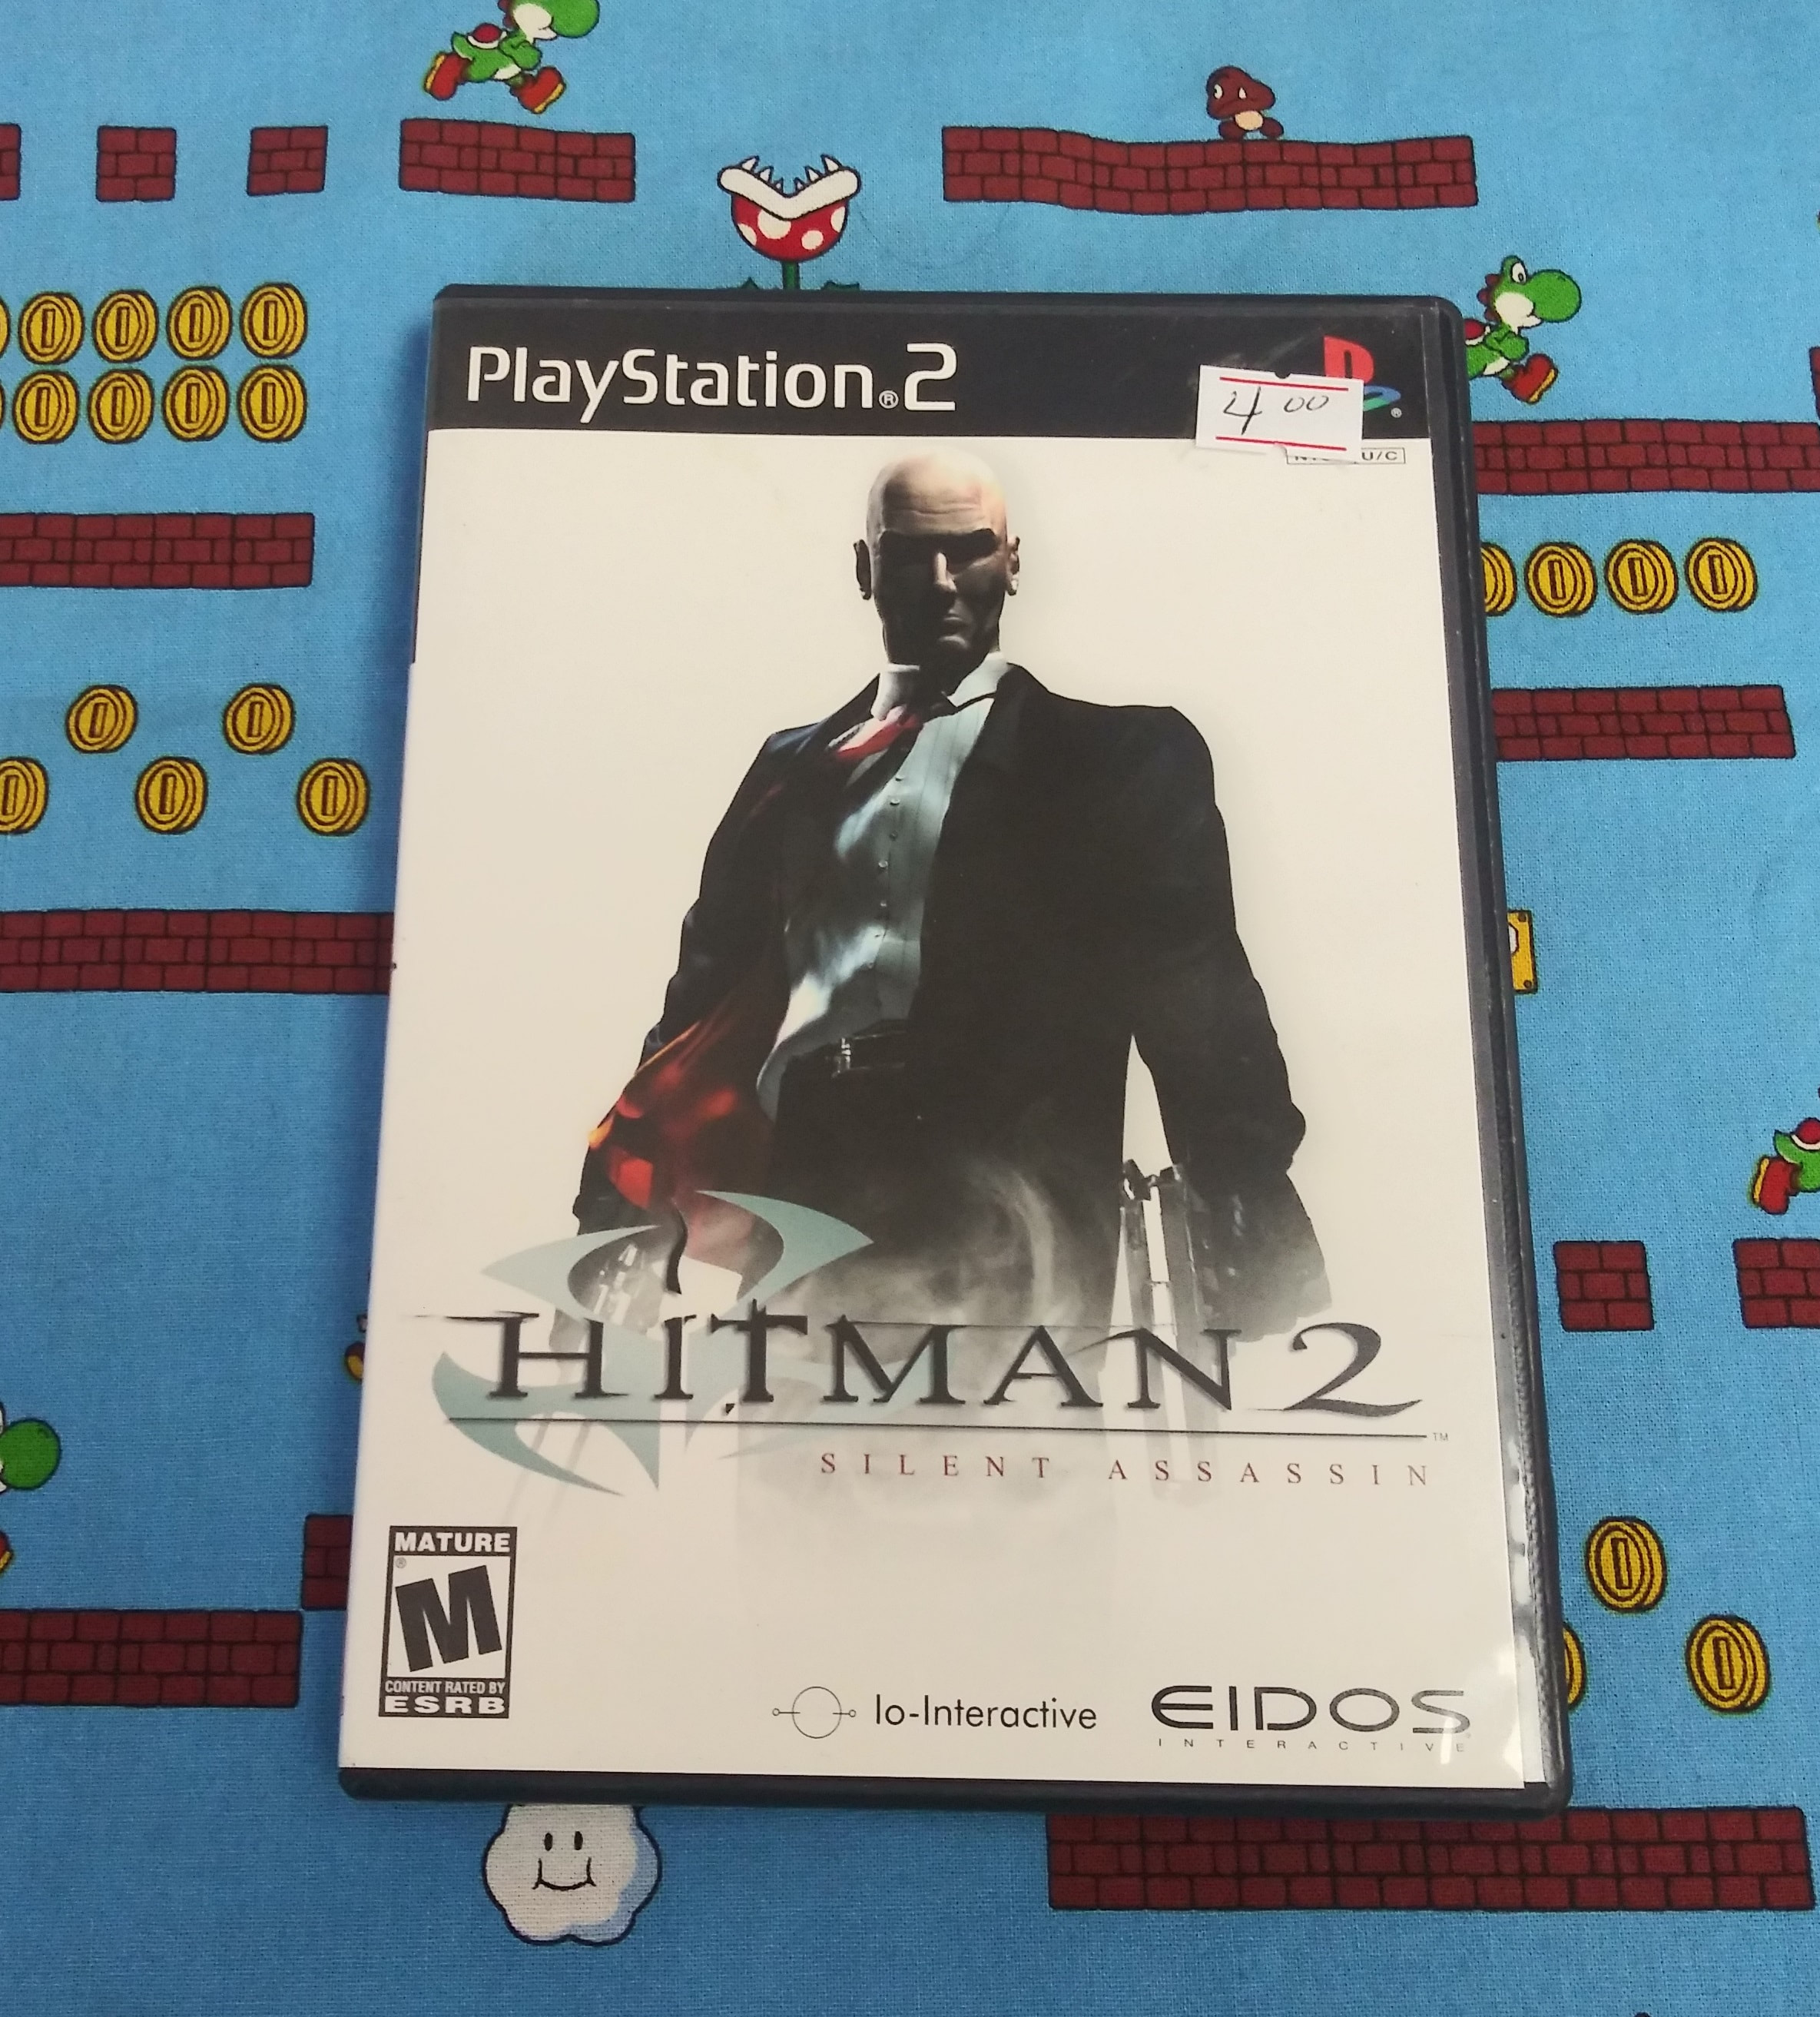 Ps2 Hitman 2 Silent Assassin C Classic Contagious Games Llc